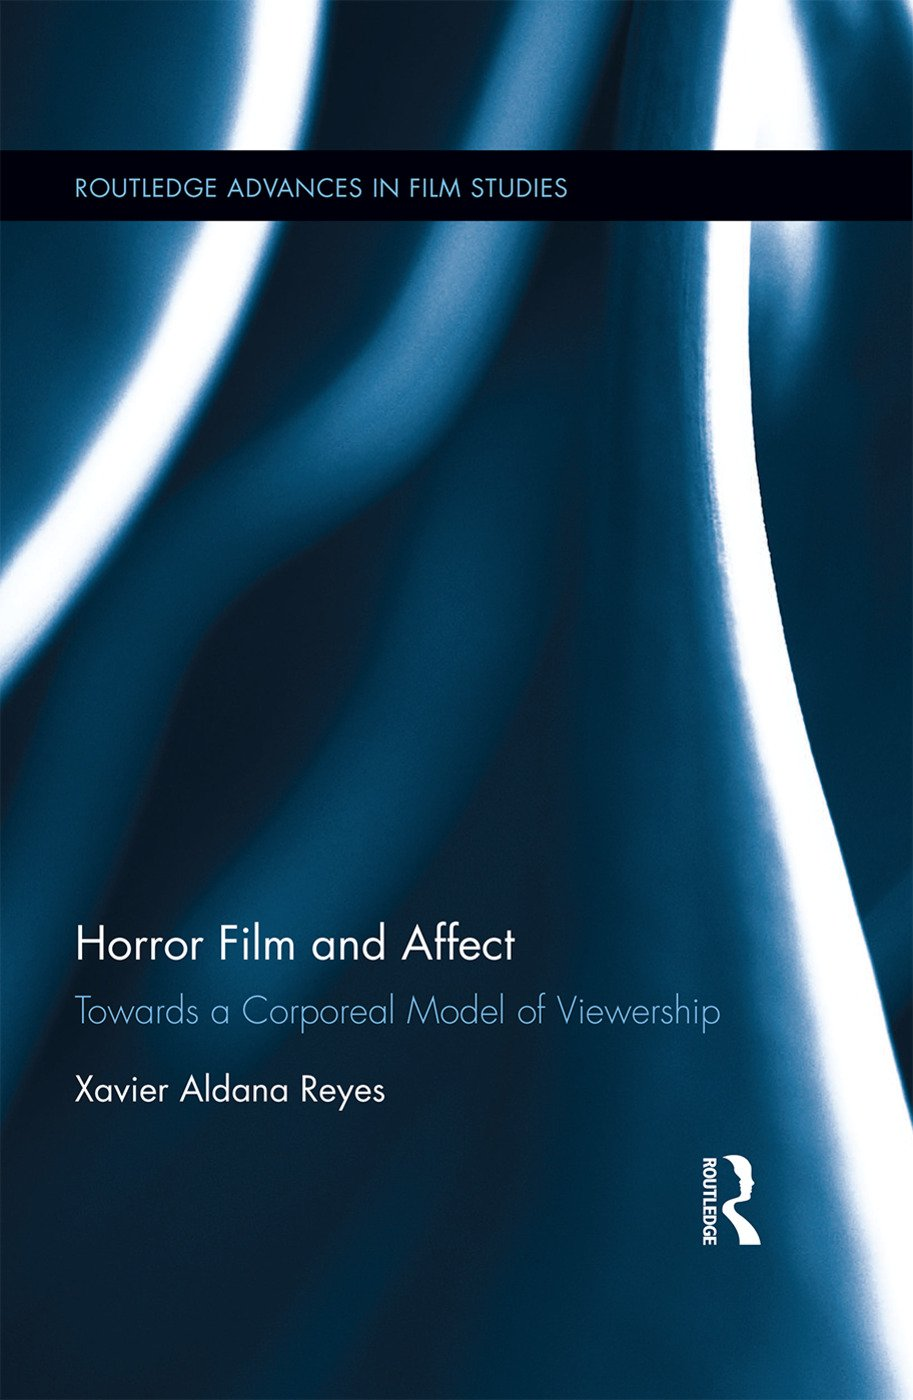 Horror Film and Affect: Towards a Corporeal Model of Viewership book cover